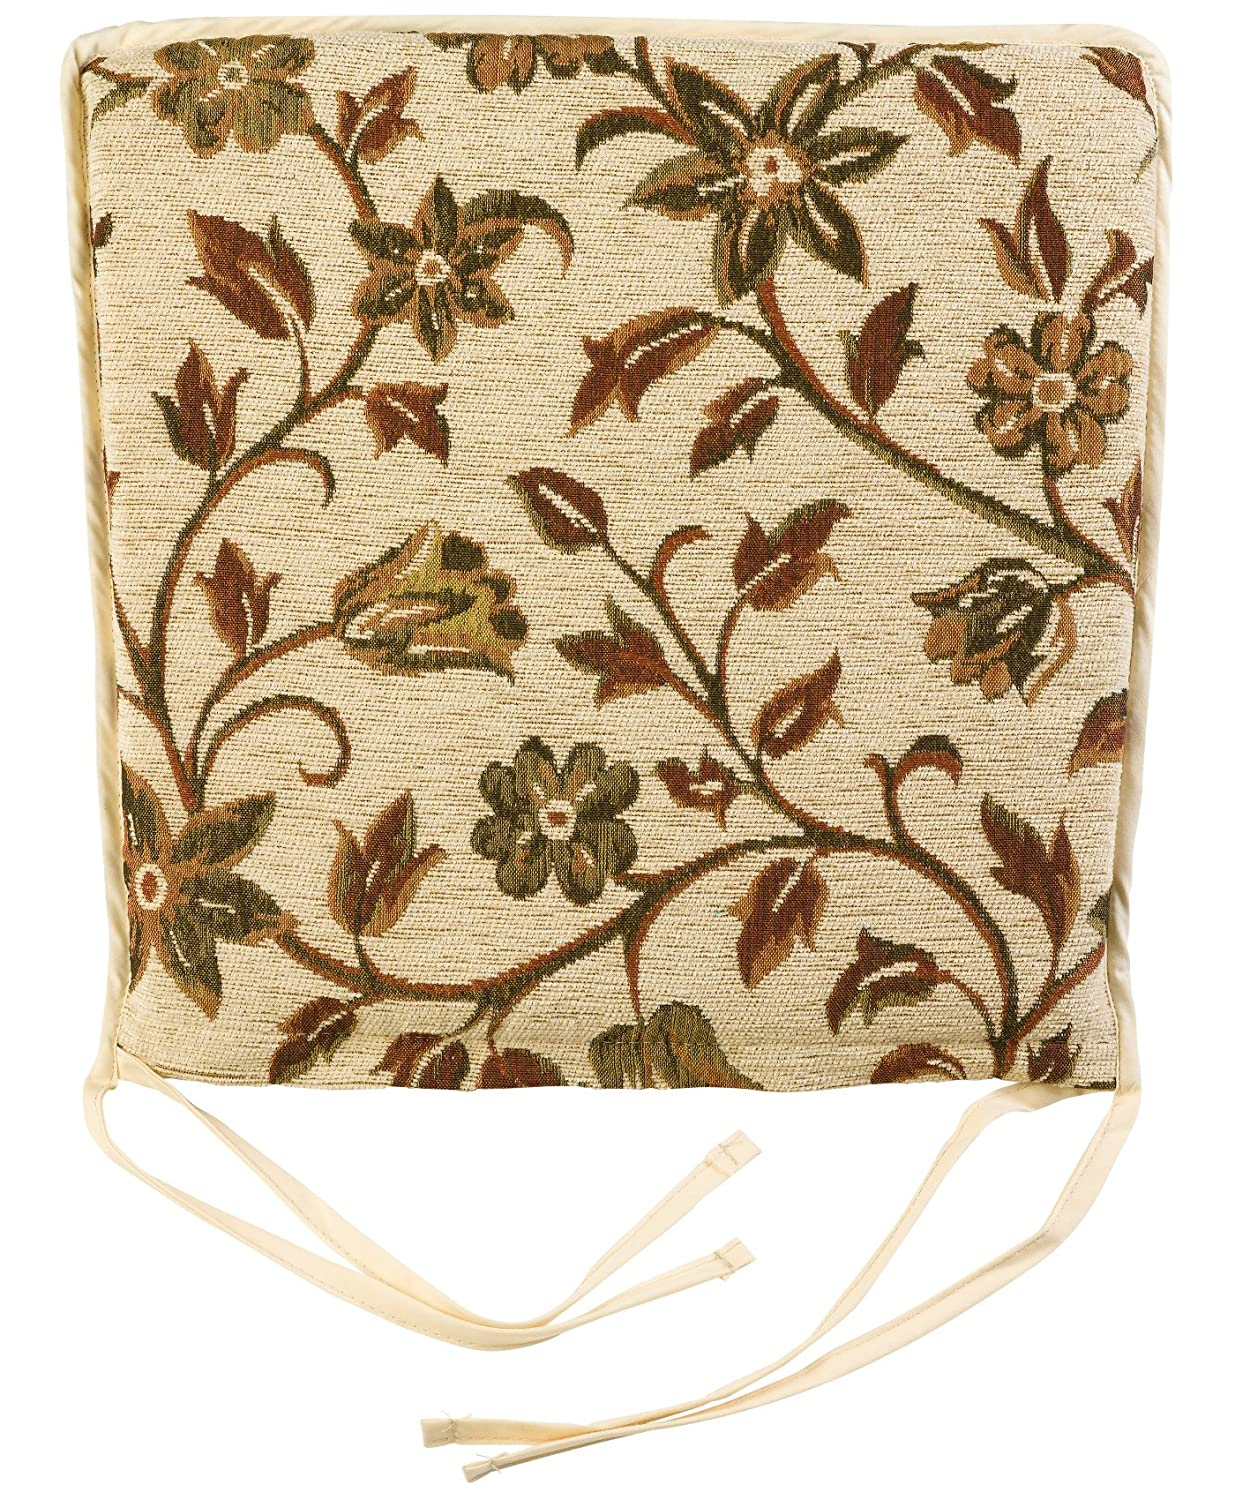 Floral Tapestry Style Square Seat Pad Zipped Kitchen Garden Chair Cushion 15